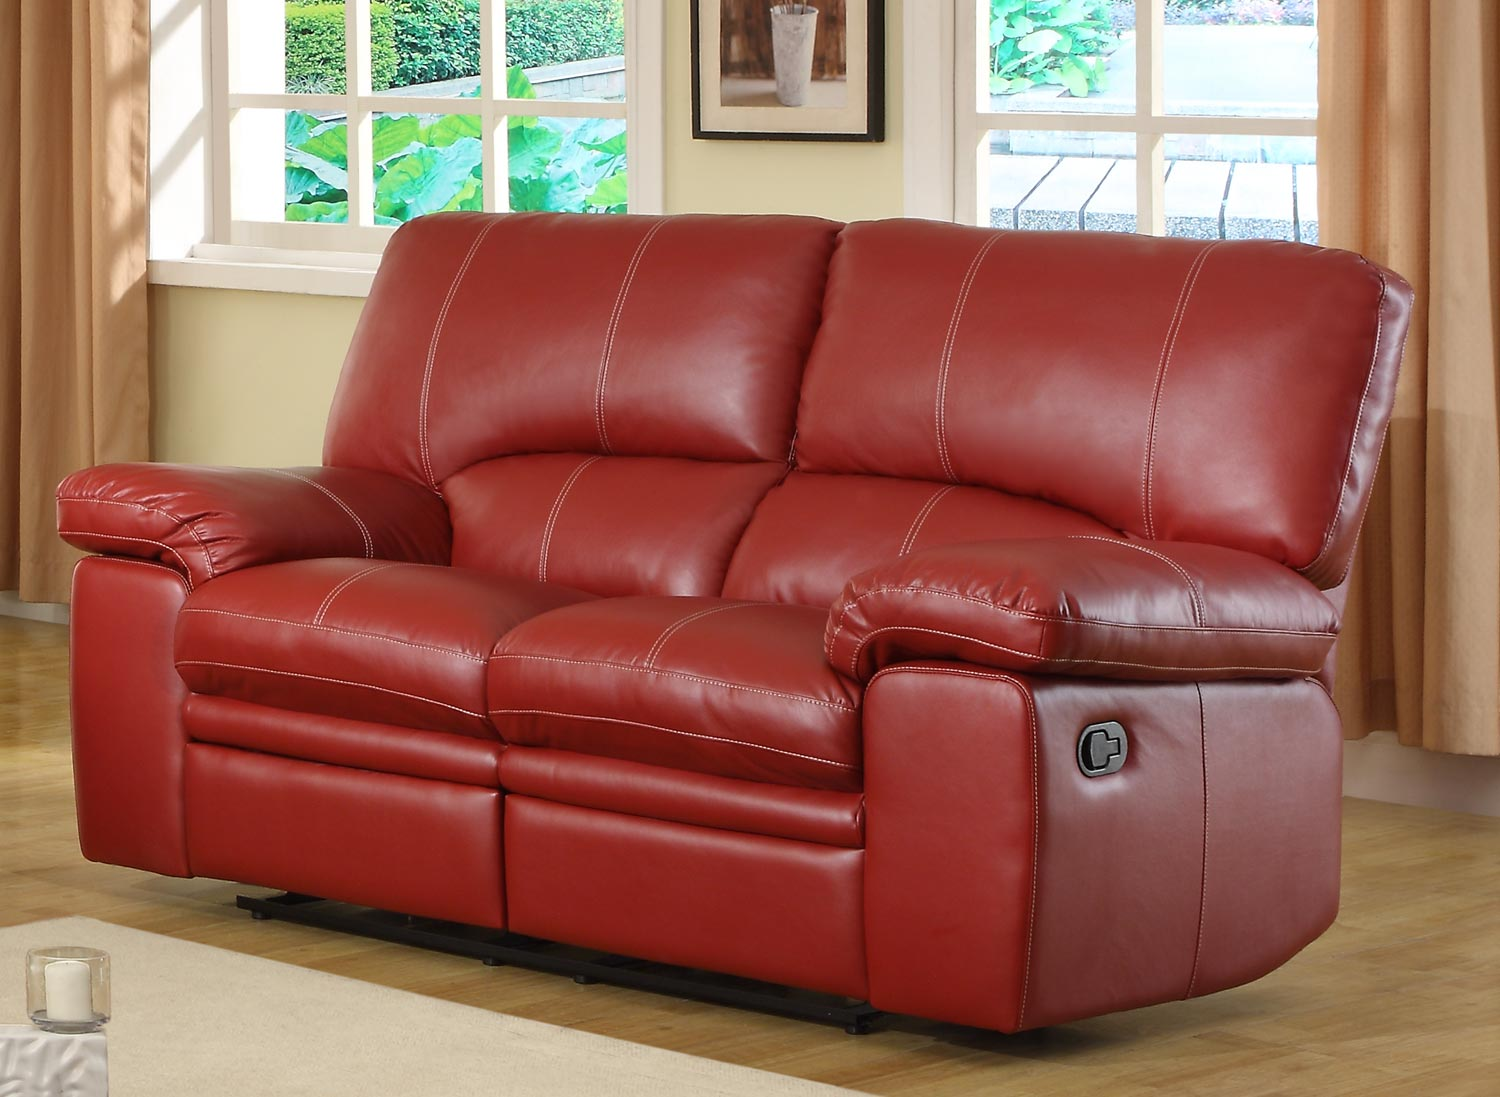 Homelegance Kendrick Double Recliner Love Seat - Red - Bonded Leather Match